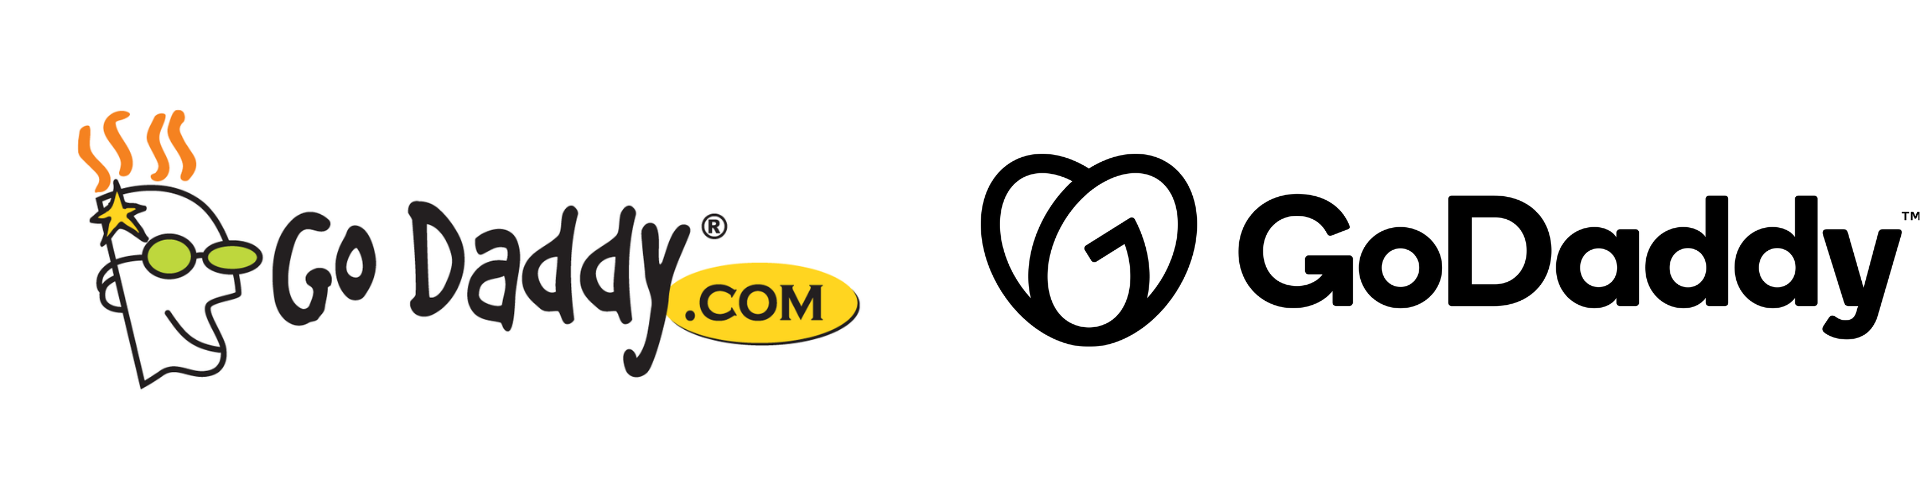 Old GoDaddy logo with cartoon man's face on the left and new graphic logo on the right.